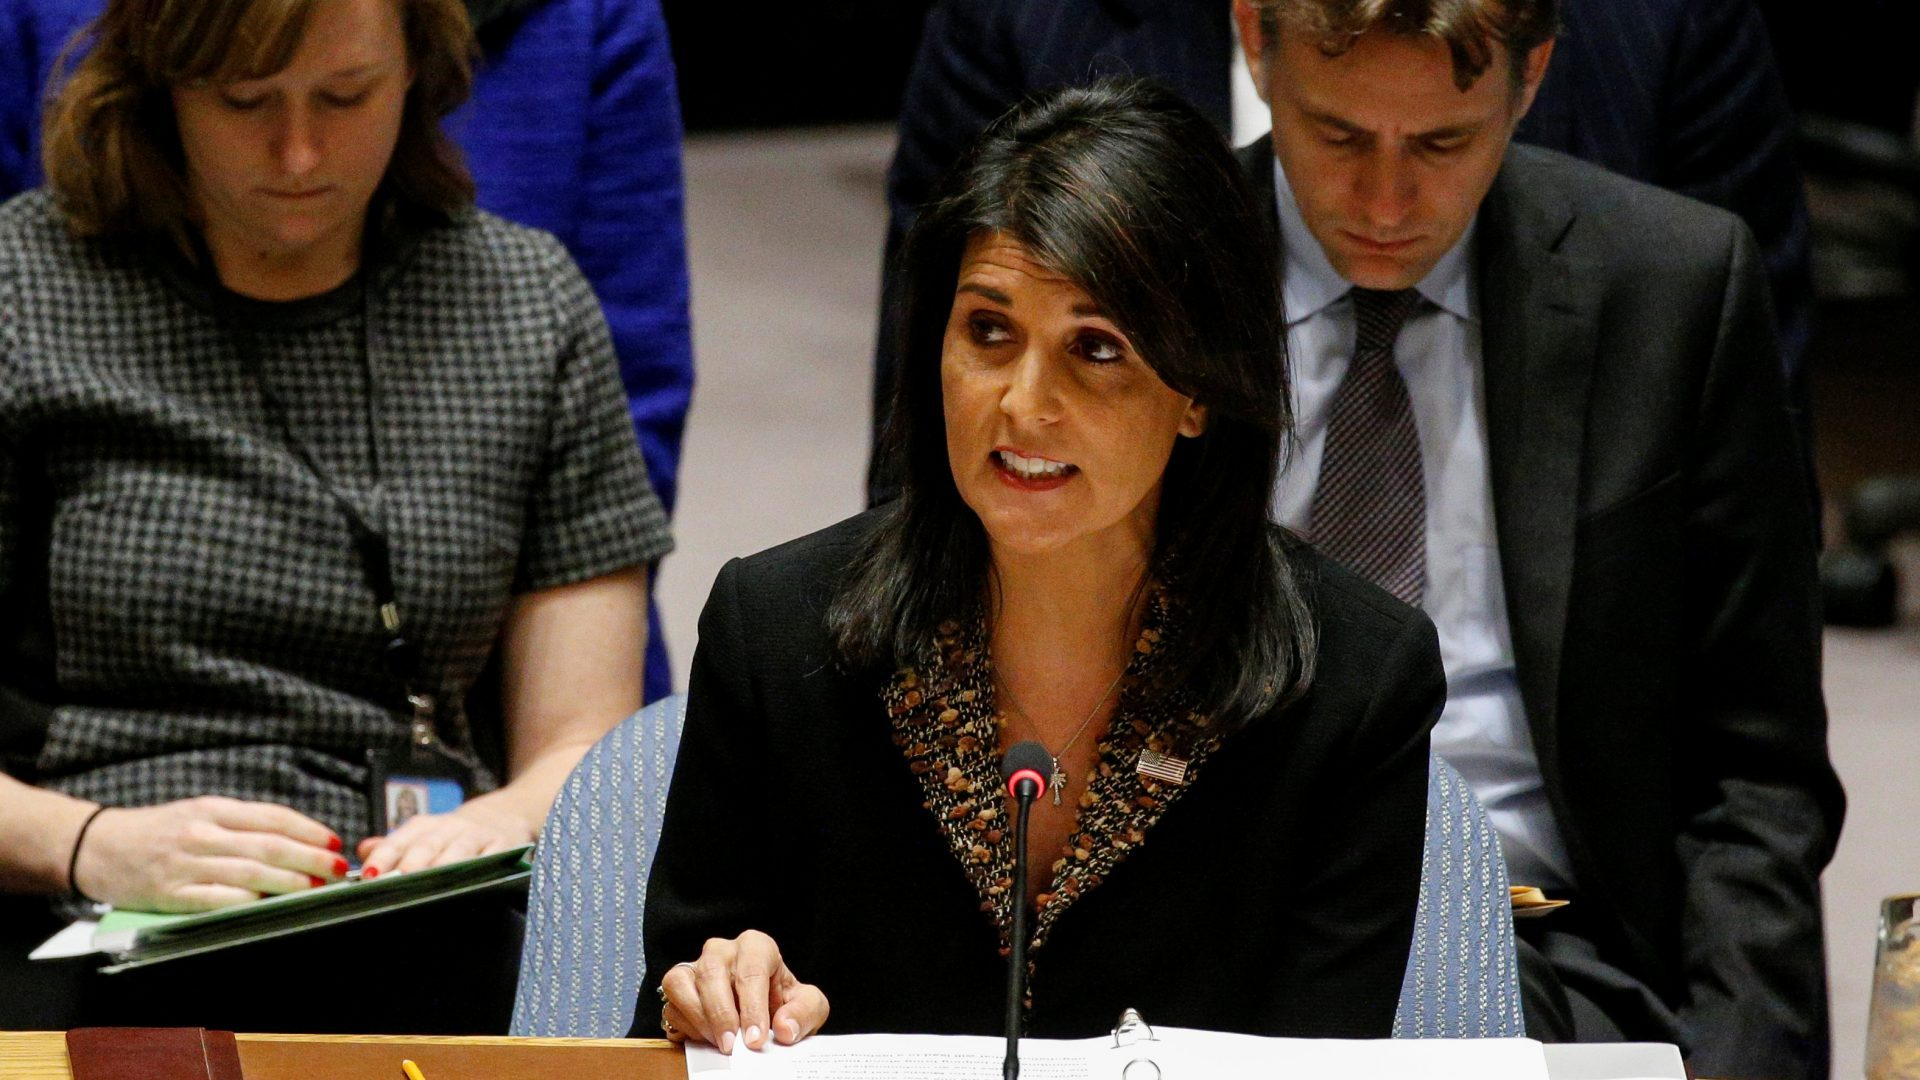 Nikki Haley: UNSC 2334 an impediment to peace